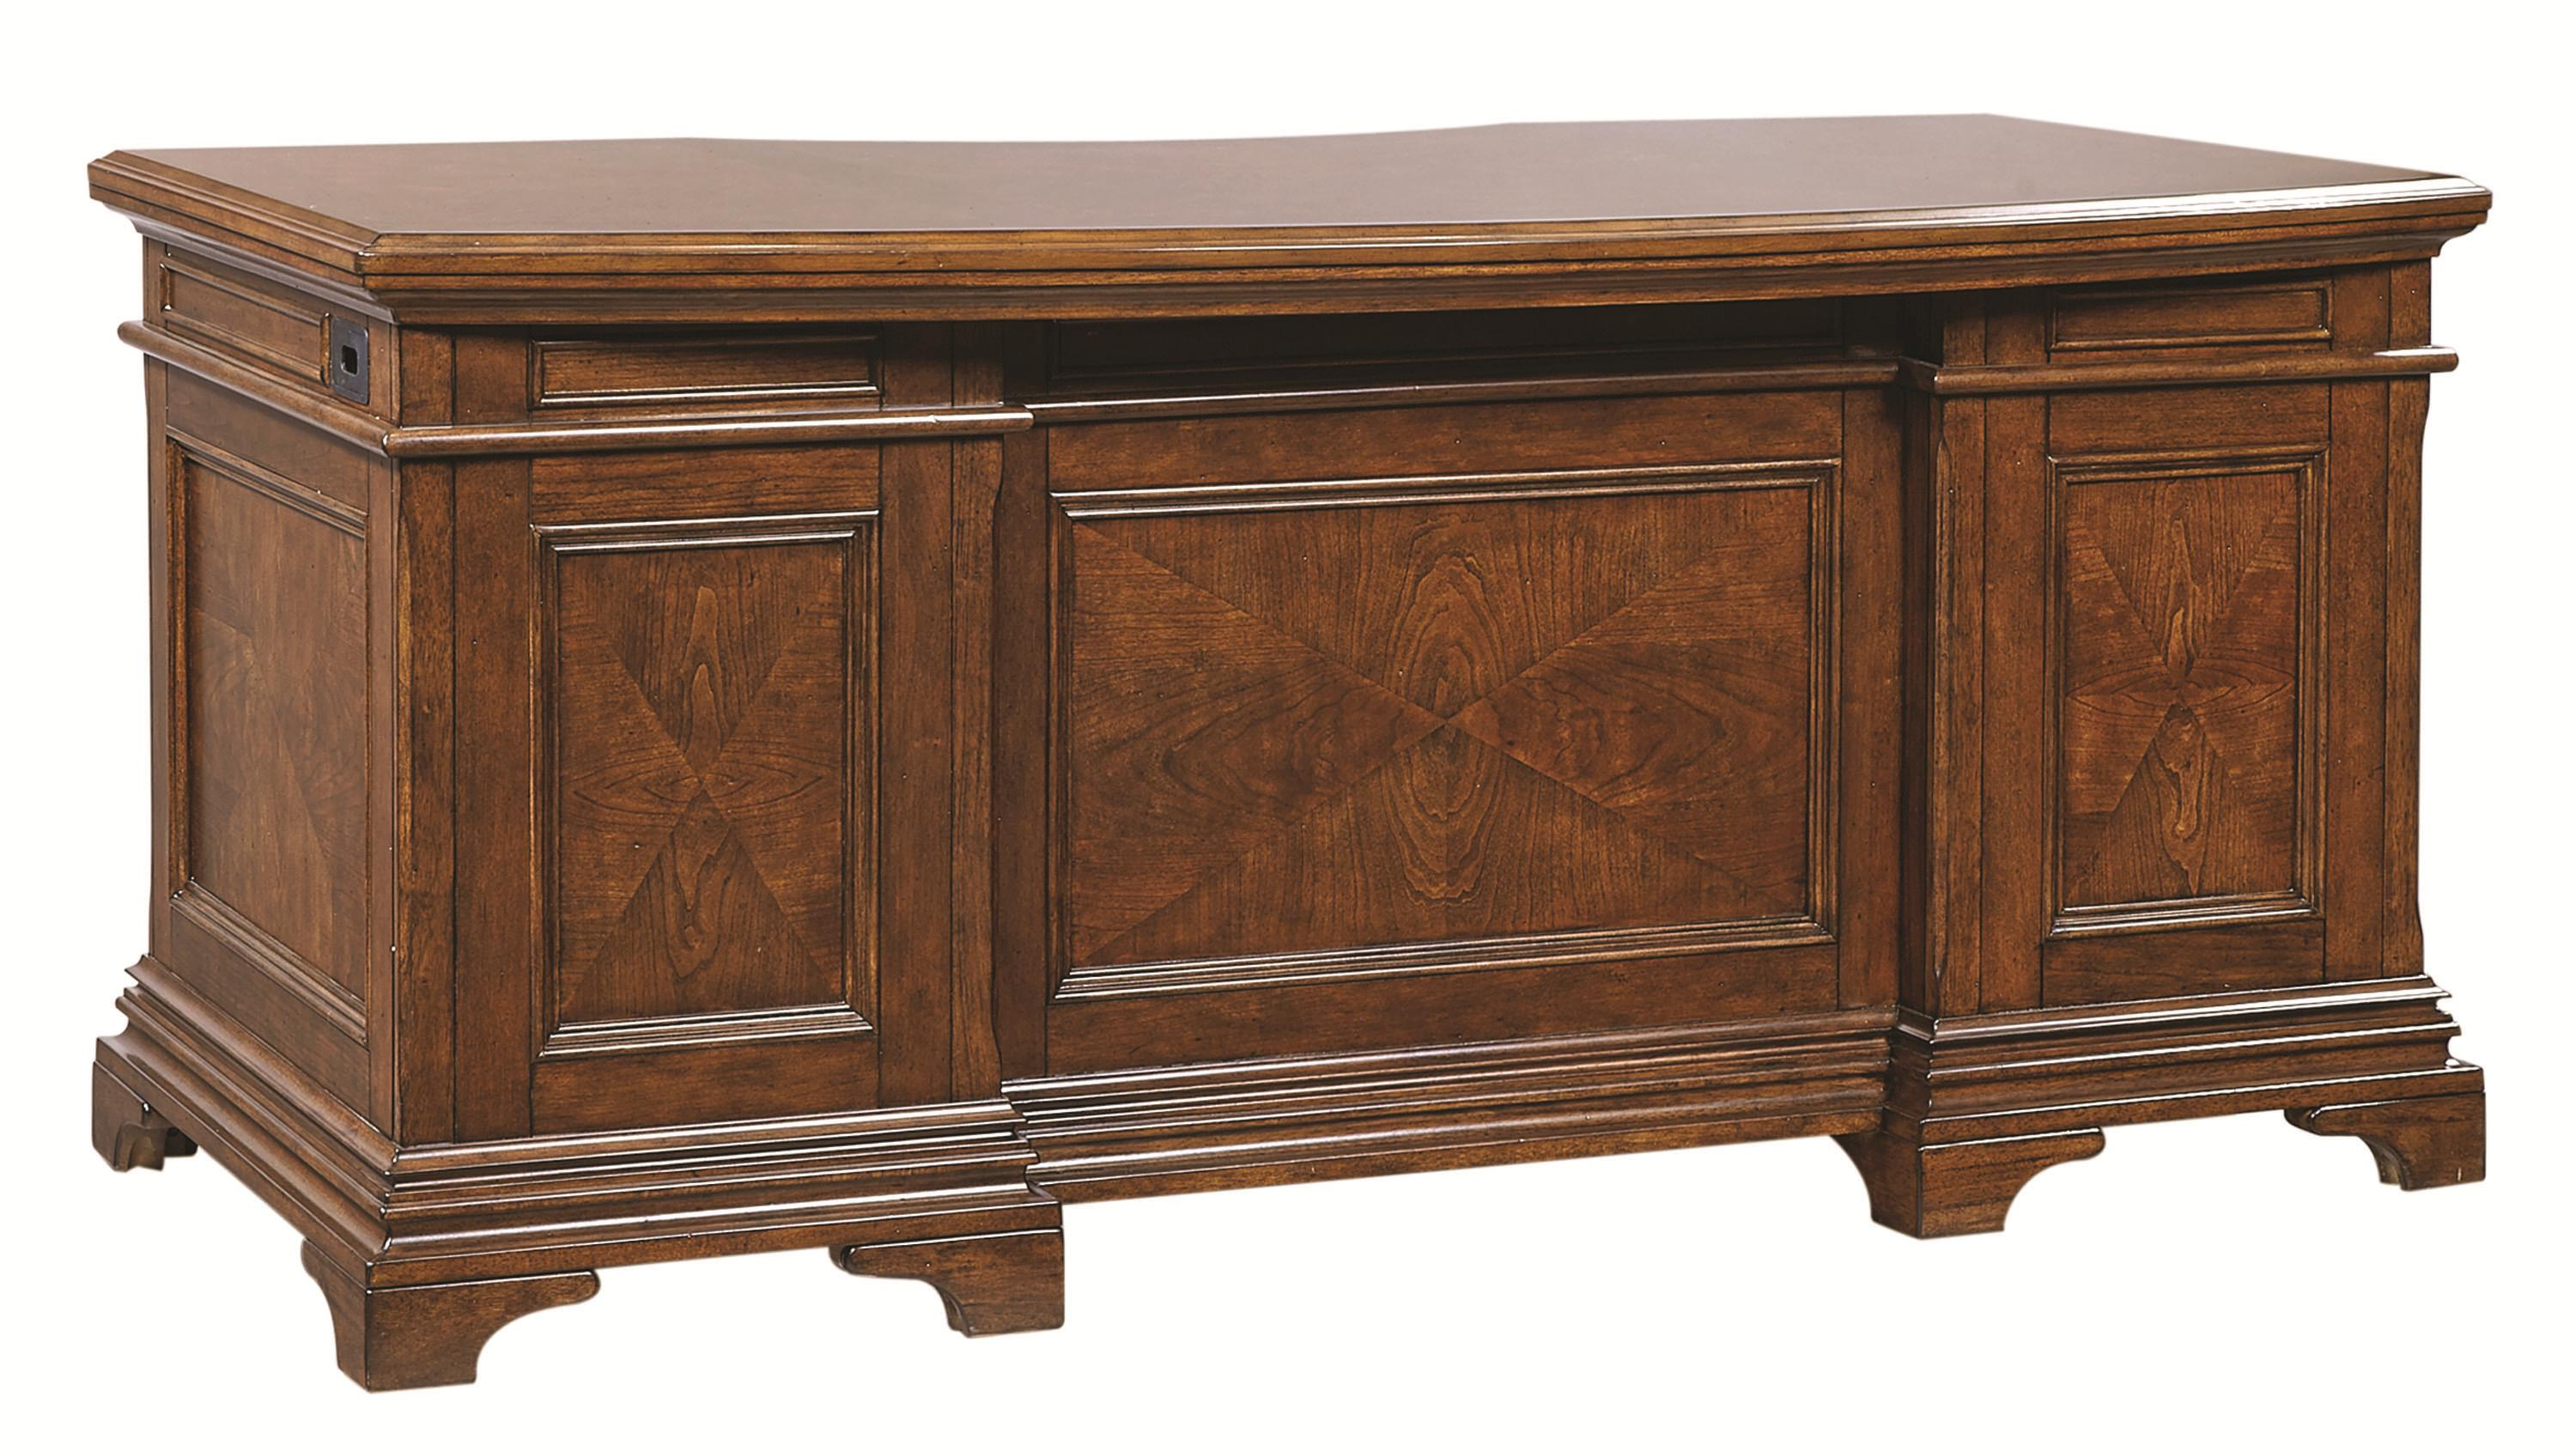 Hawthorne Curved-Top Exec Desk by Aspenhome at Walker's Furniture